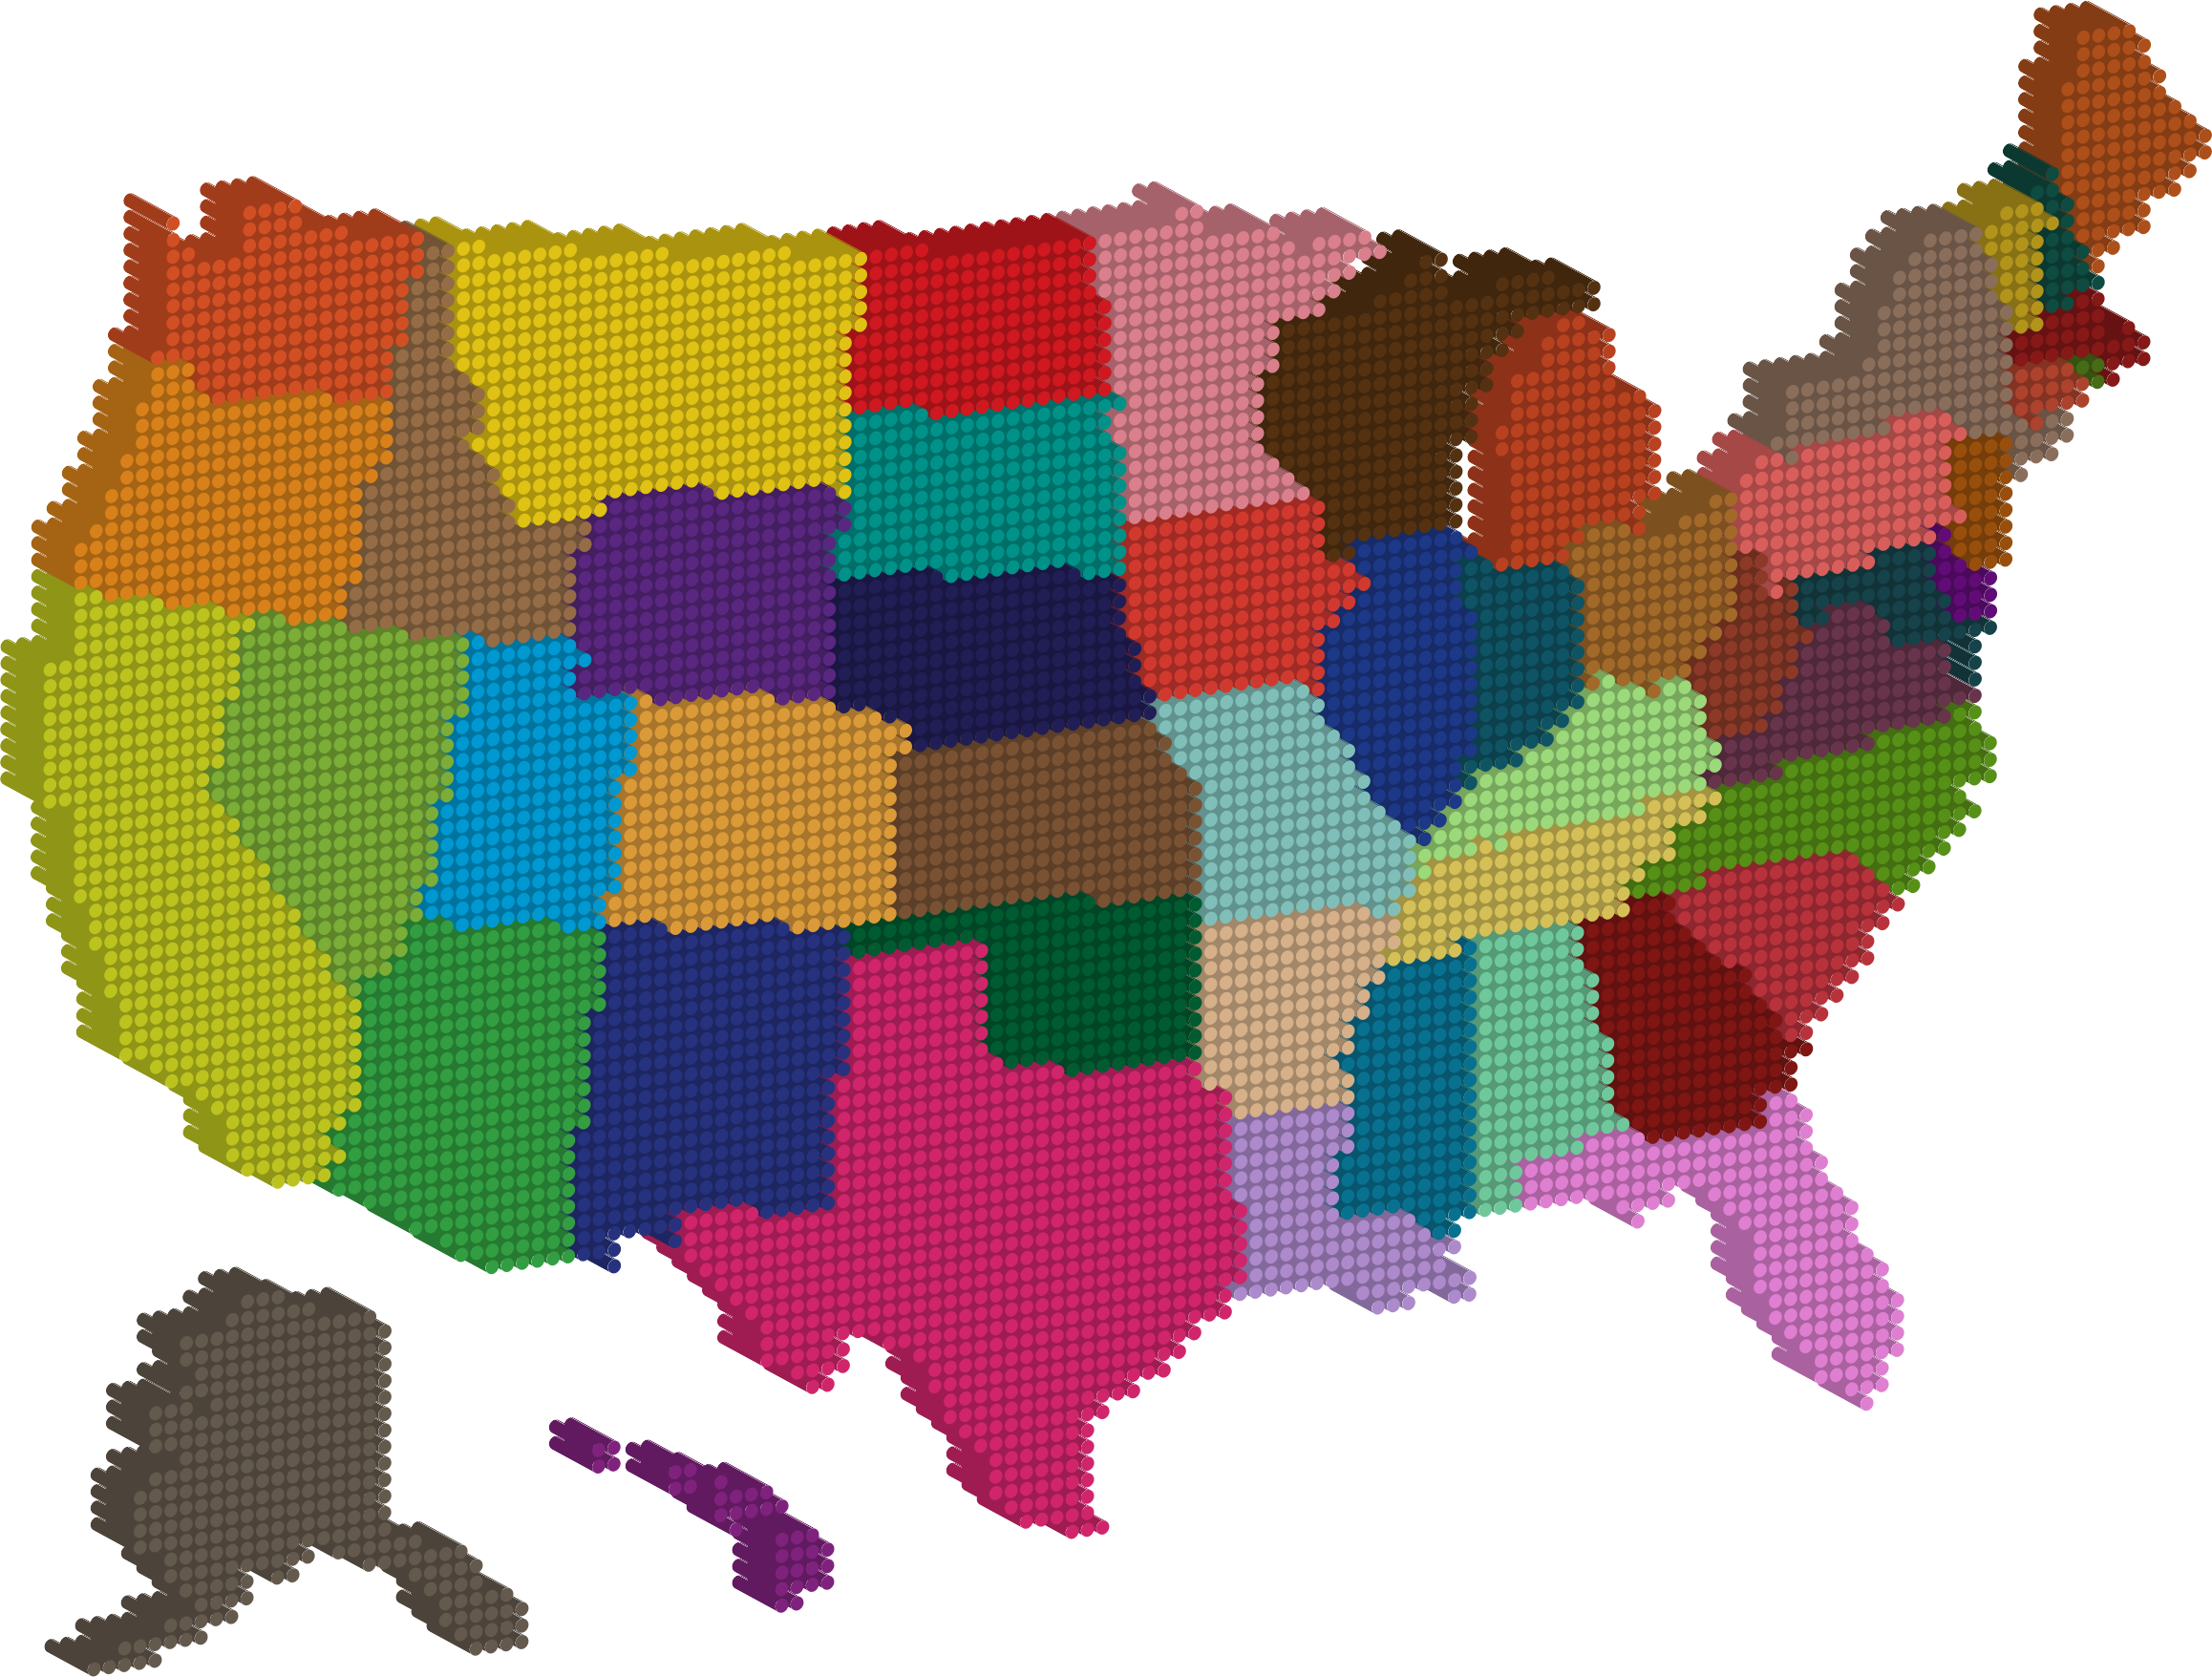 3D Multicolored United States Map Dots by GDJ